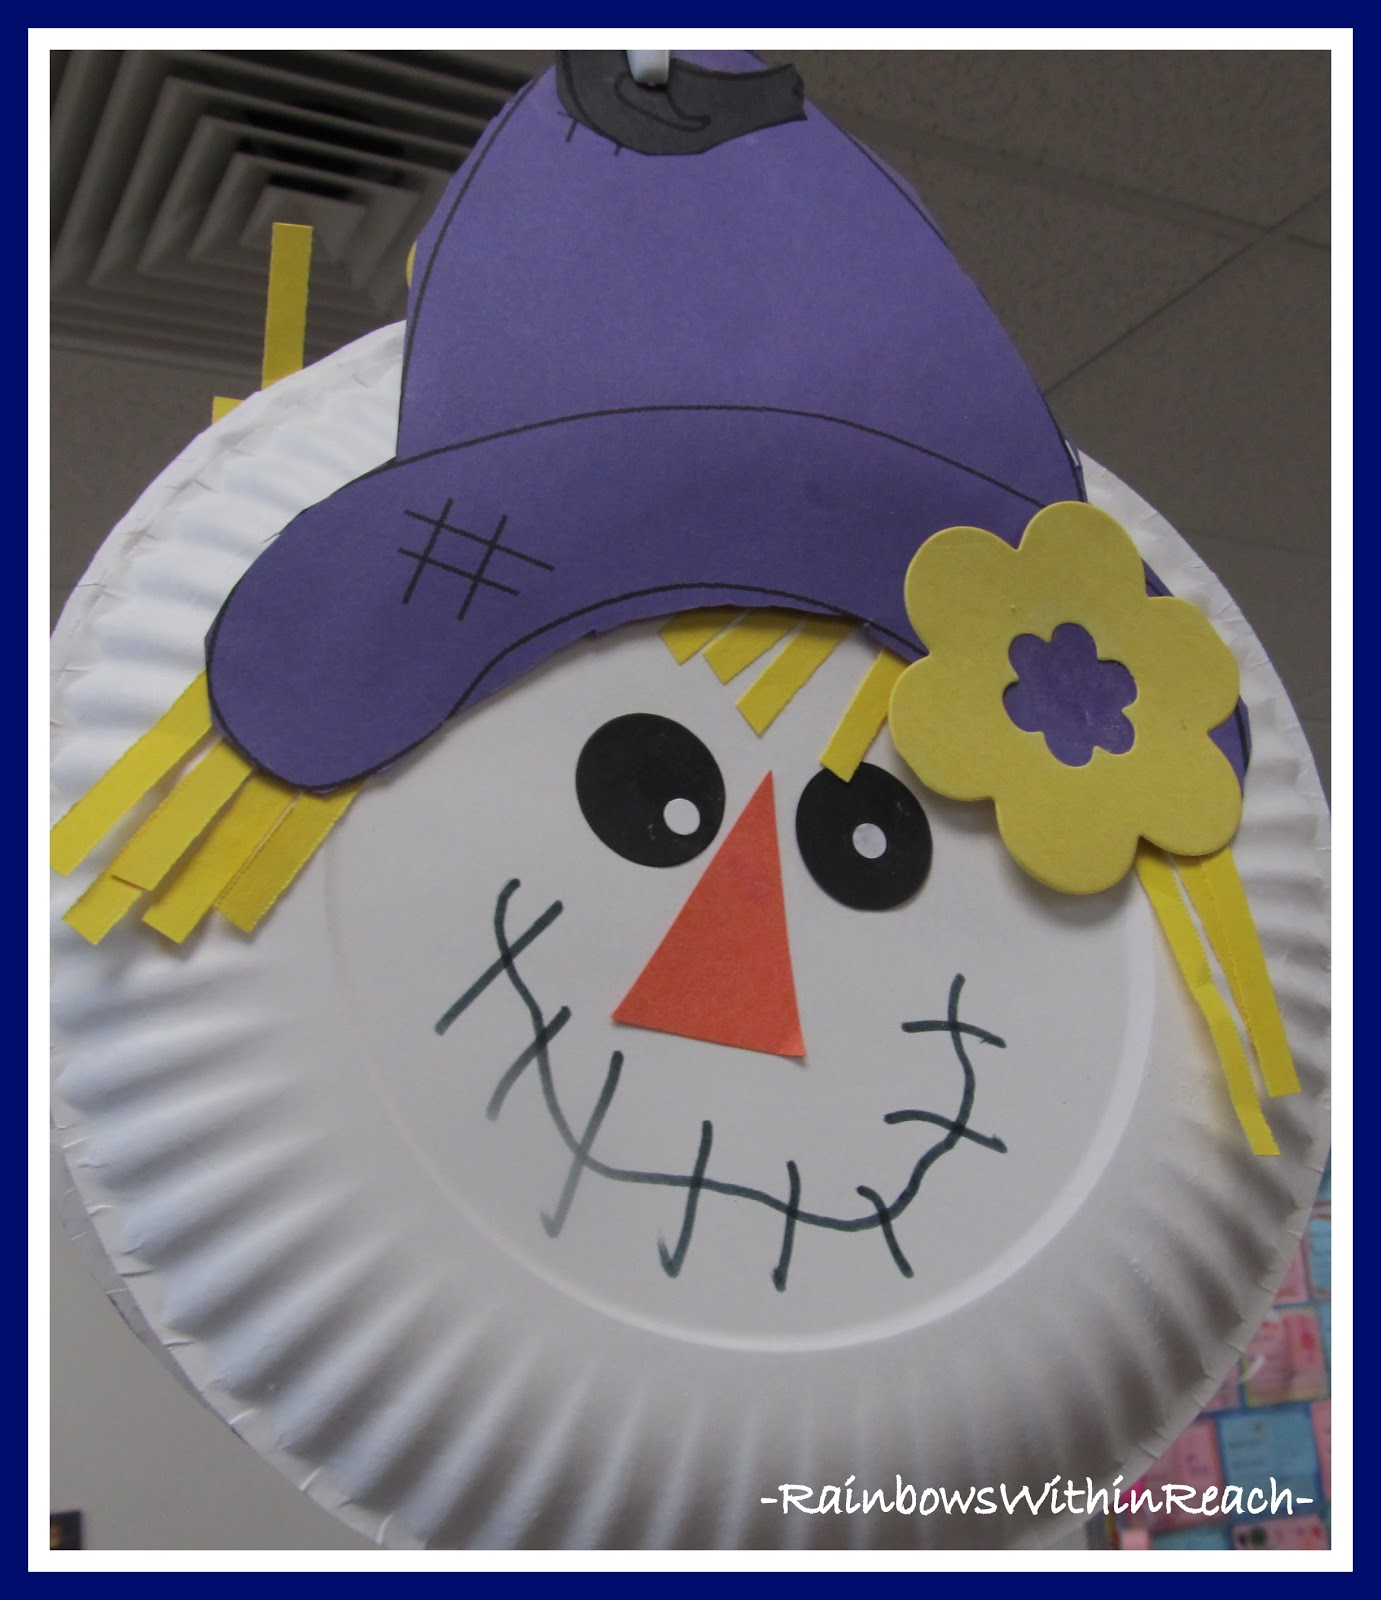 scarecrow preschool activities www rainbowswithinreach 742